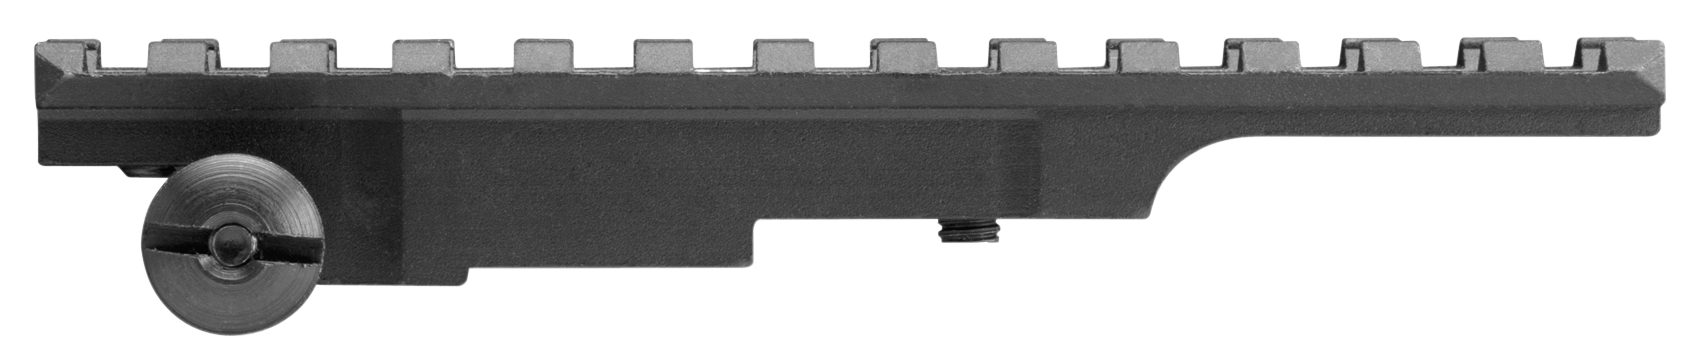 Aim Sports MT015 Scope Mount For Mauser 98 1-Piece Style Black Hard Coat Anodized Finish